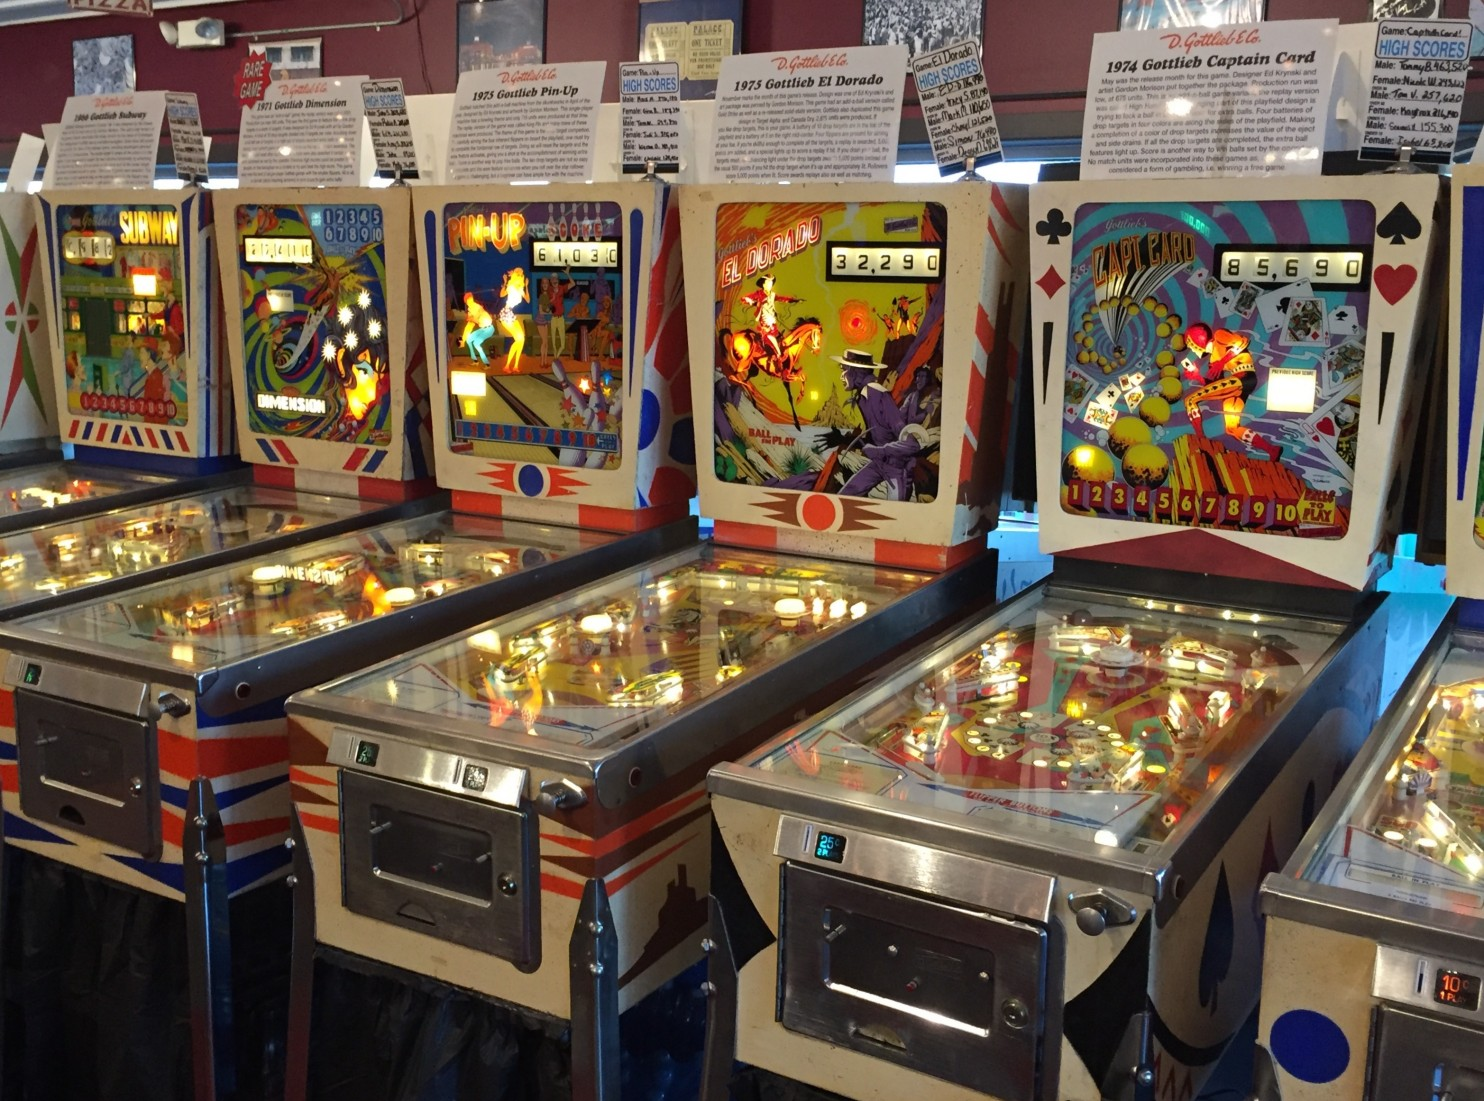 Attention, Pinball Wizards: There's A Museum In New Jersey